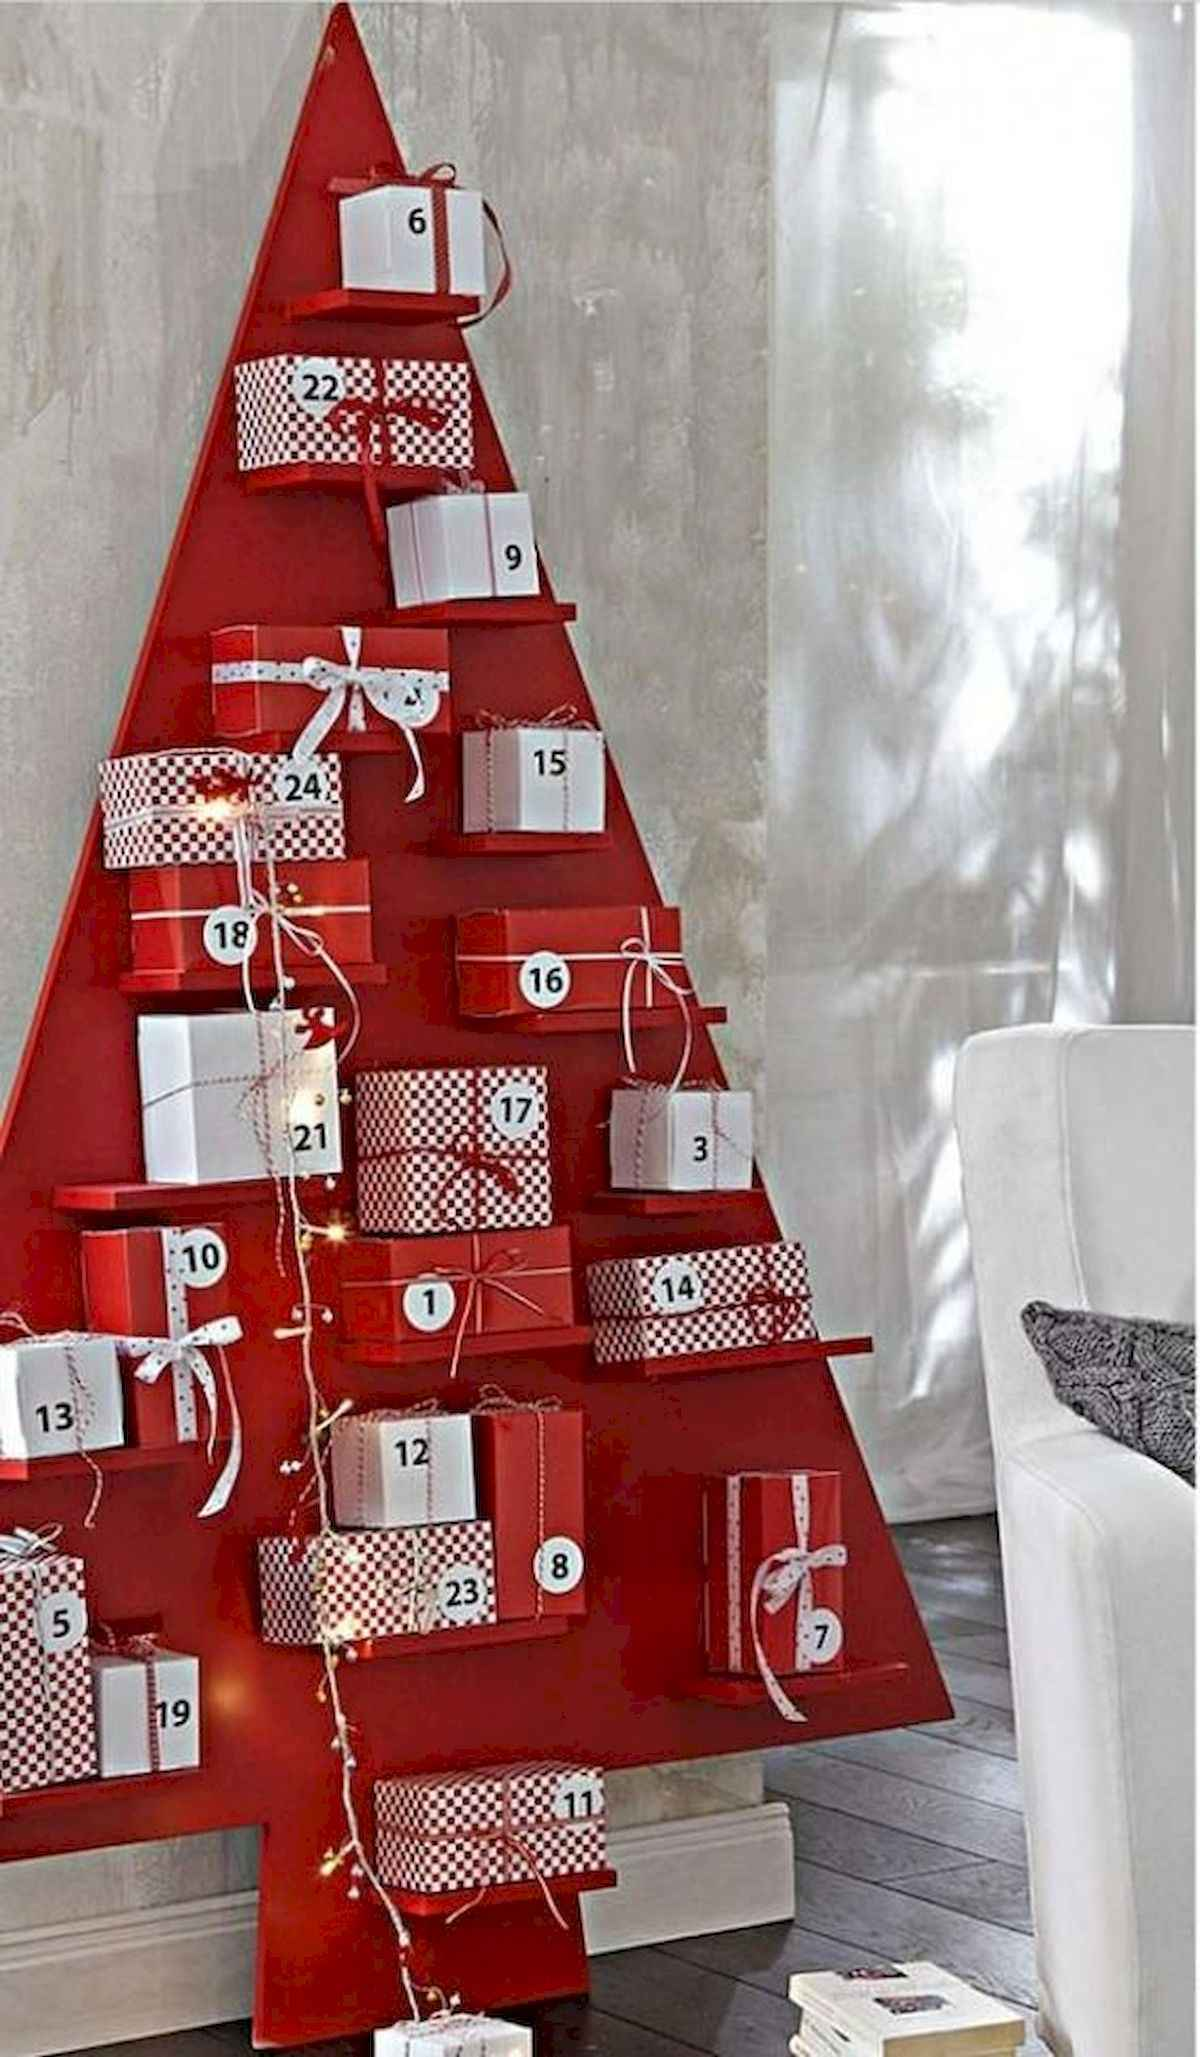 60 awesome wall art christmas ideas decorations (42)